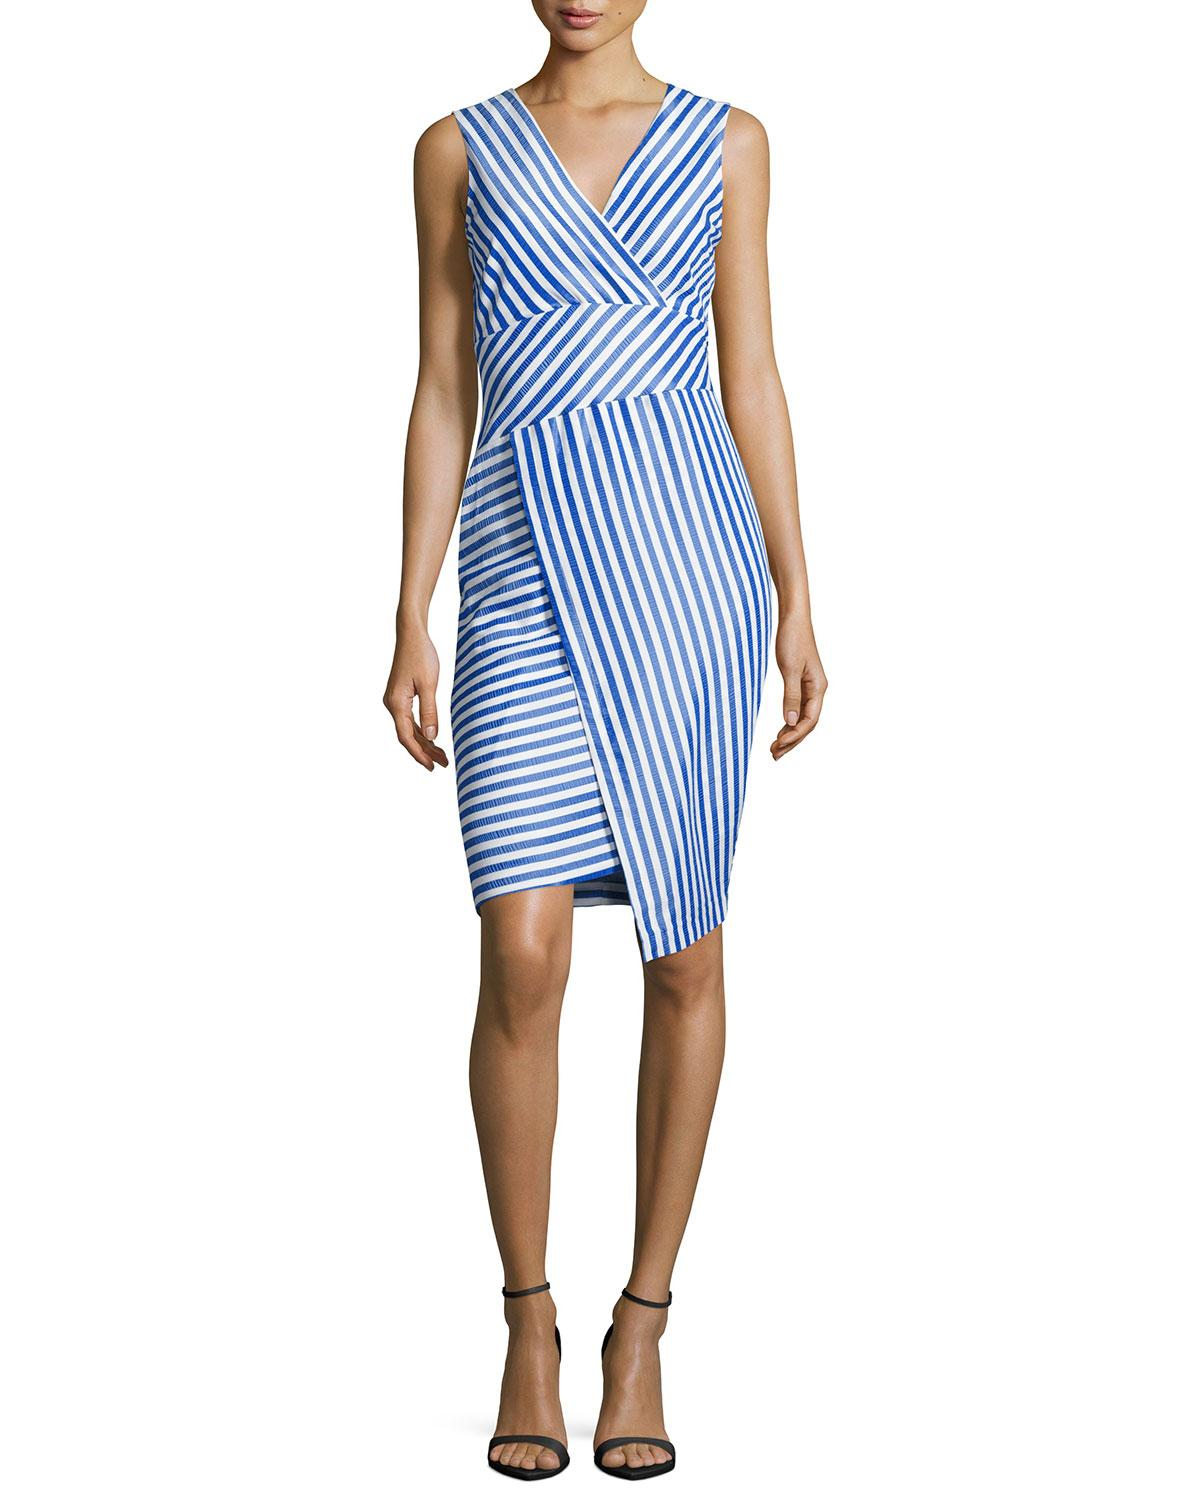 Neiman marcus striped sleeveless sheath dress in blue lyst for Neiman marcus dresses for wedding guest